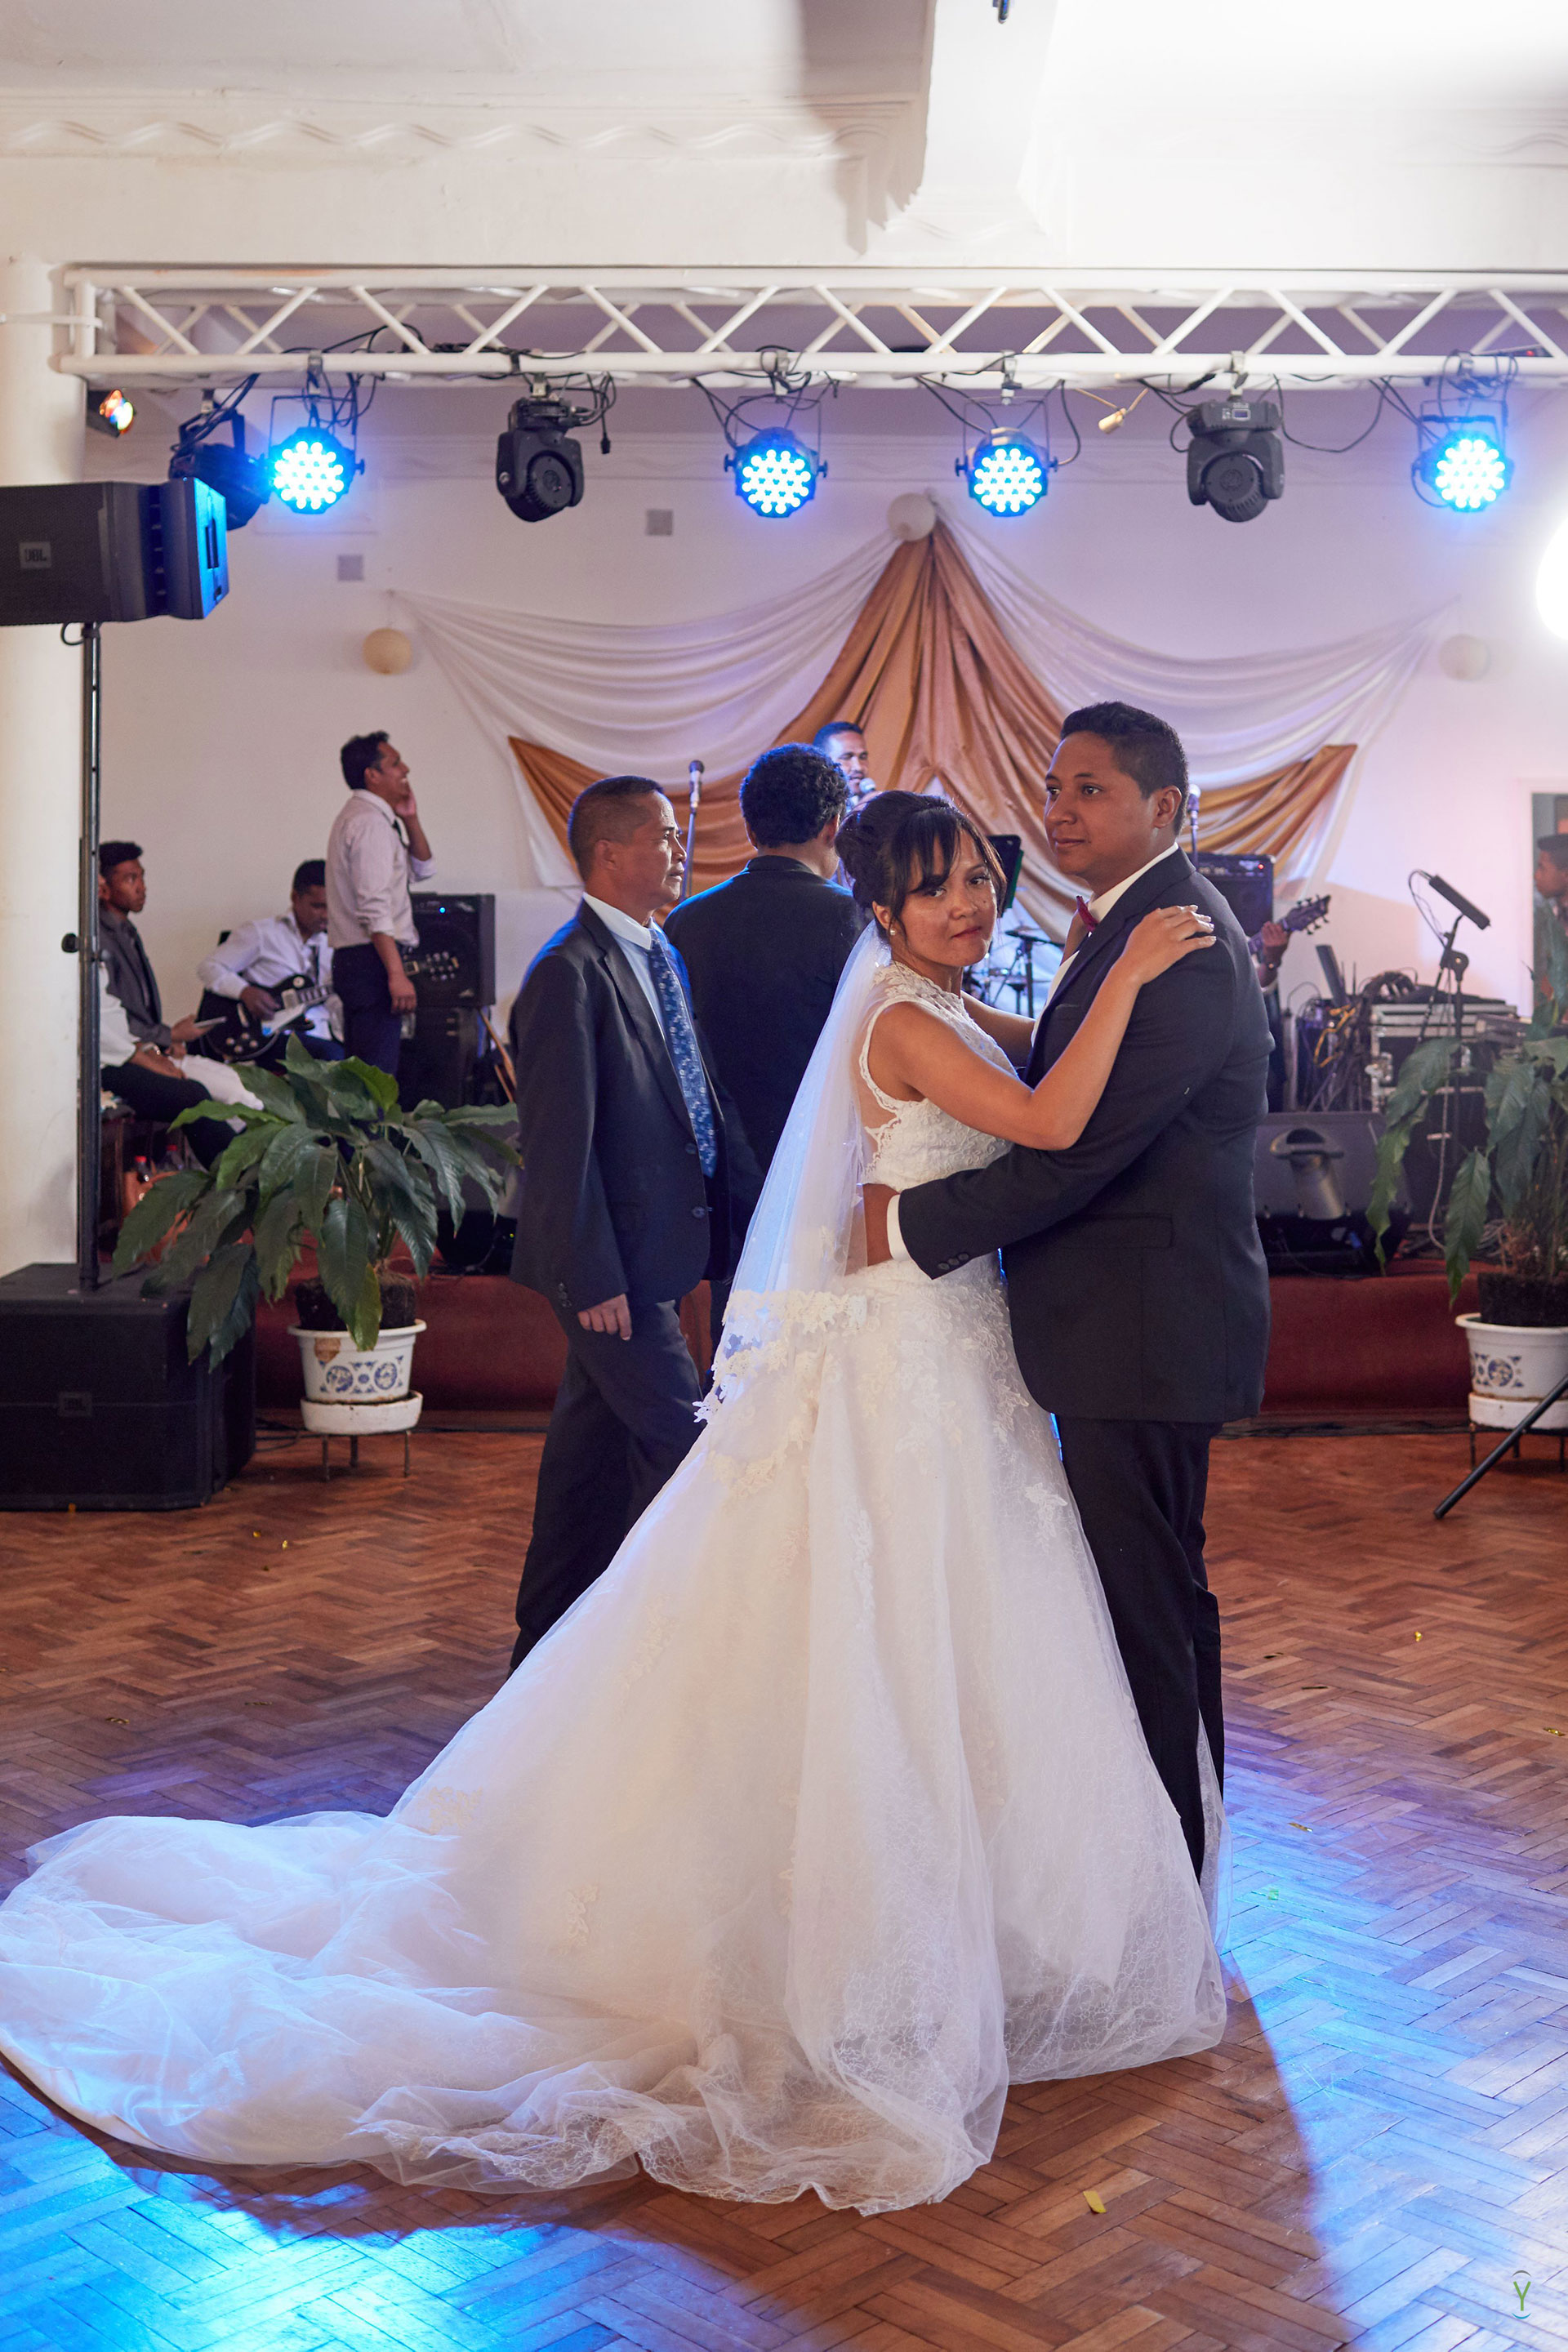 0590_Mariage_Mbola_Hoby_18-09-22